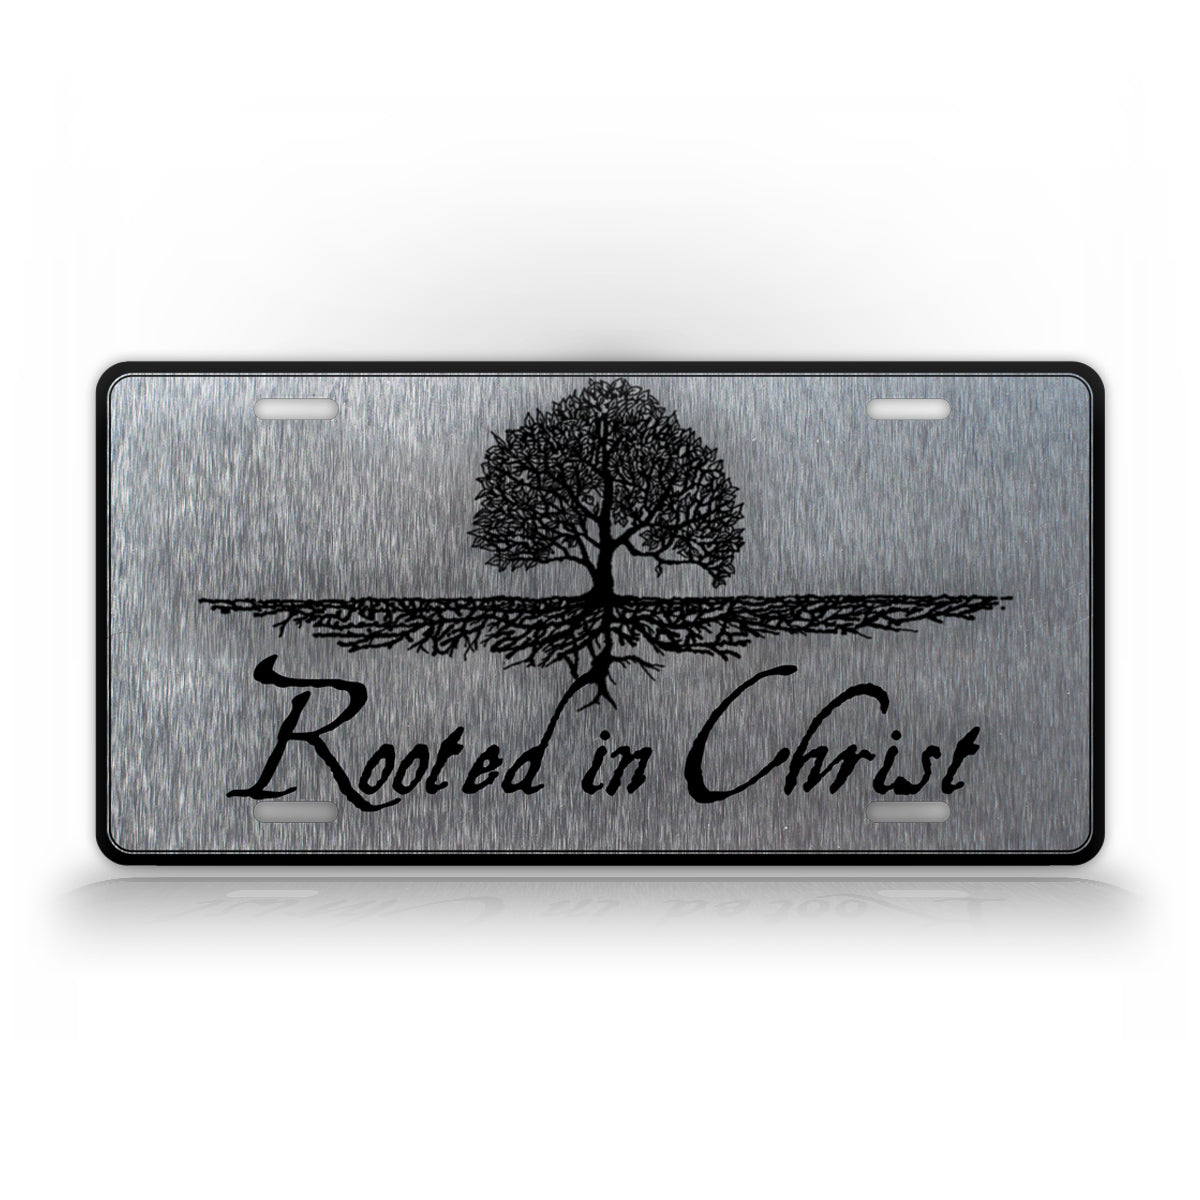 Silver Rooted In Christ Christian License Plate